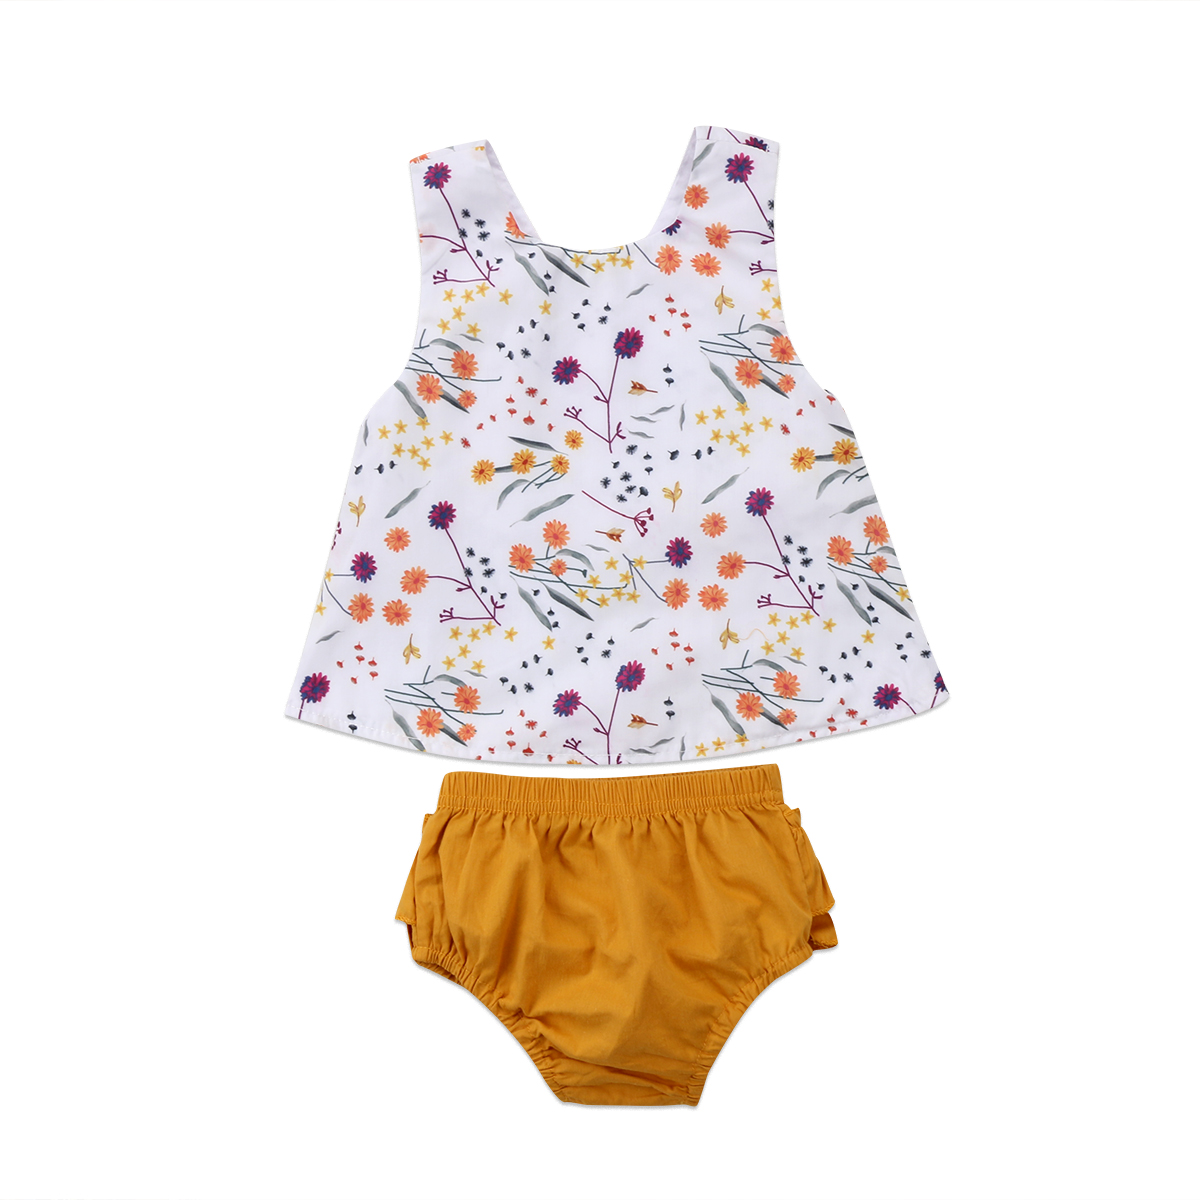 2PCS HOT Sale Toddler Kids Baby Girls Fashion Floral Tops+Yellow Solid Pants Casual Clothes Set 0-18M